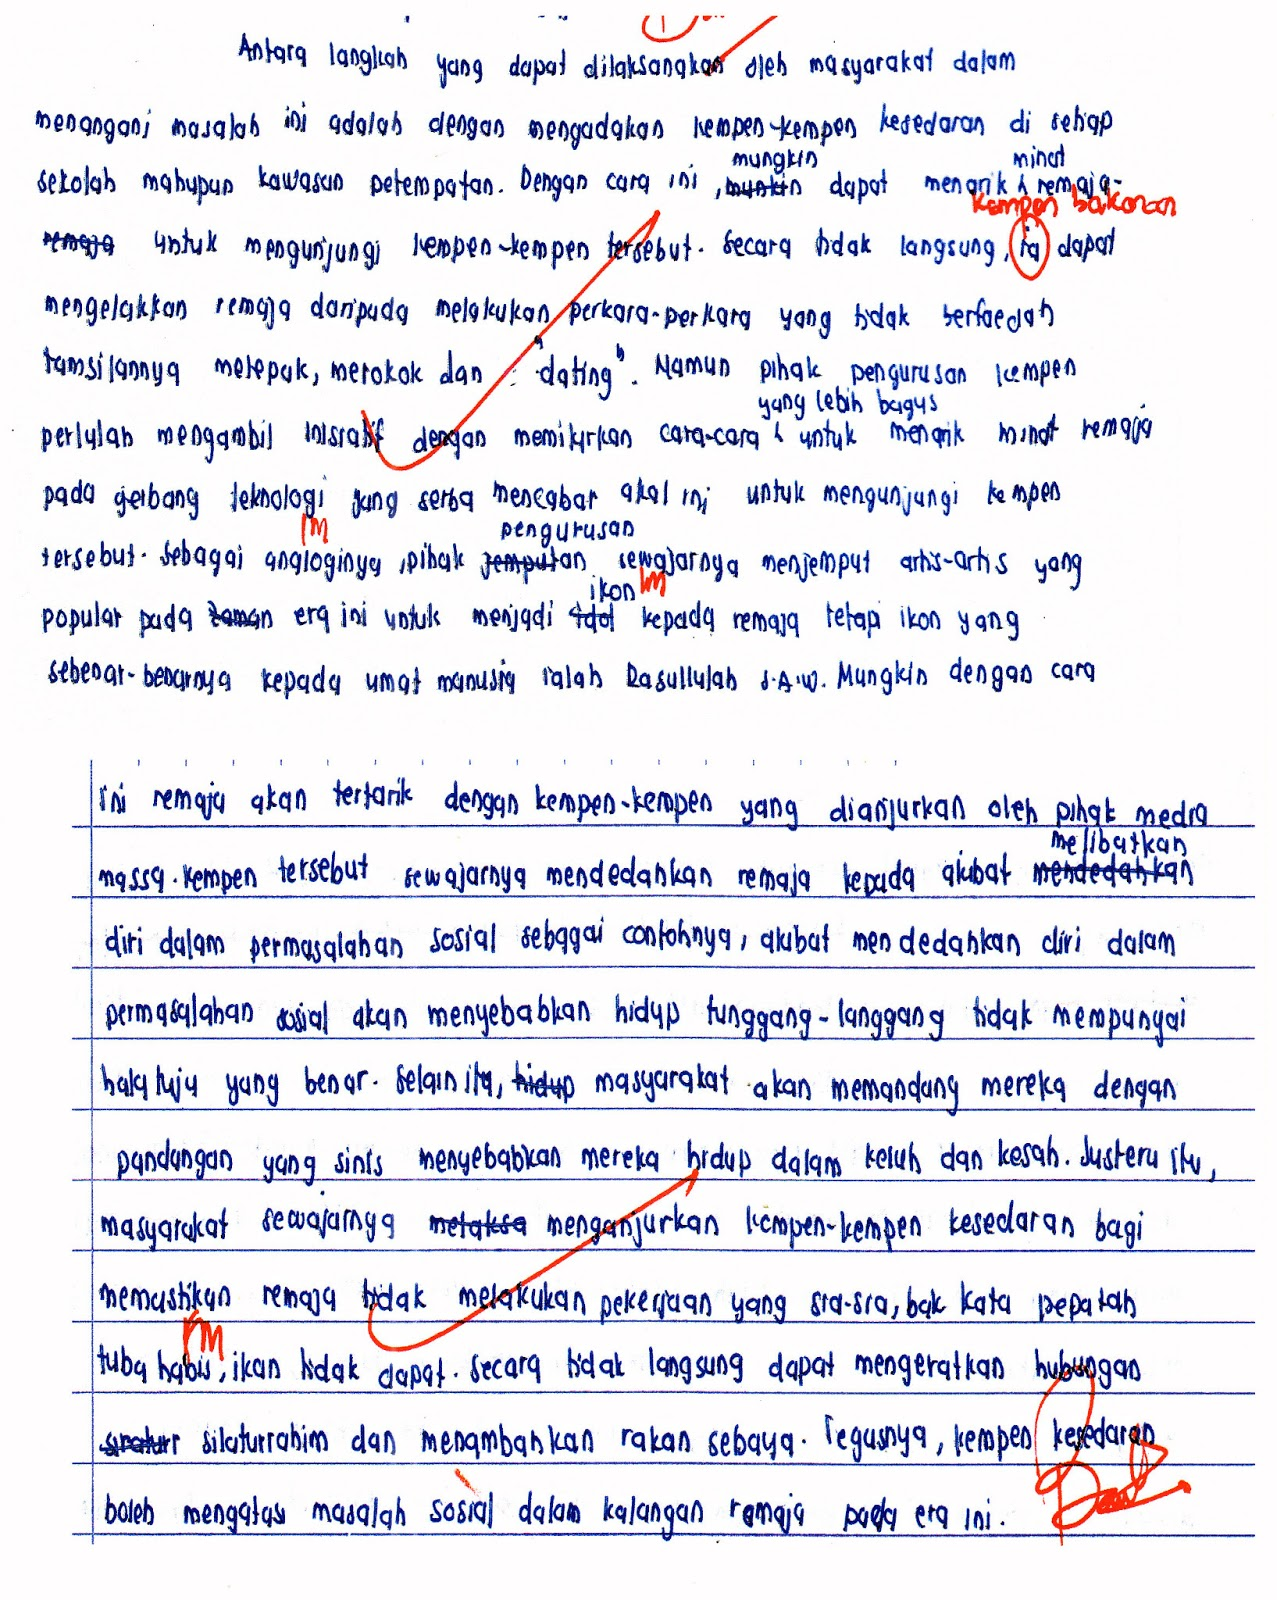 bahasa malaysia essay In malaysia, it is known as bahasa malaysia this language is also spoken in singapore and parts bahasa malaysia also has words borrowed from arabic, sanskrit, tamil, persian, portuguese, dutch.